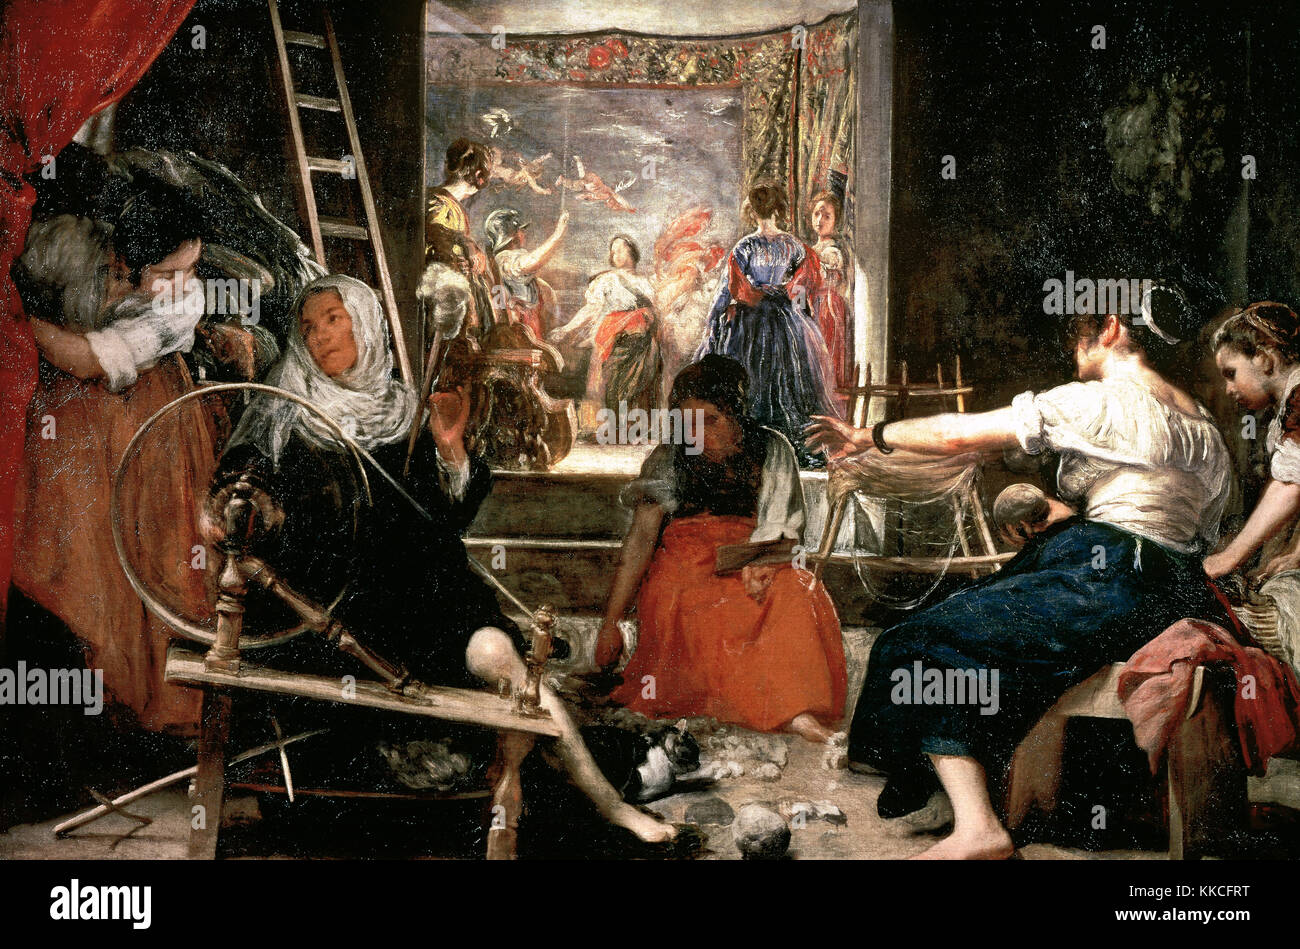 Diego Velazquez (1599-1660). Spanish painter. The Spinners or de The Fable of Arachne, 1657. Prado Museum. Madrid. - Stock Image